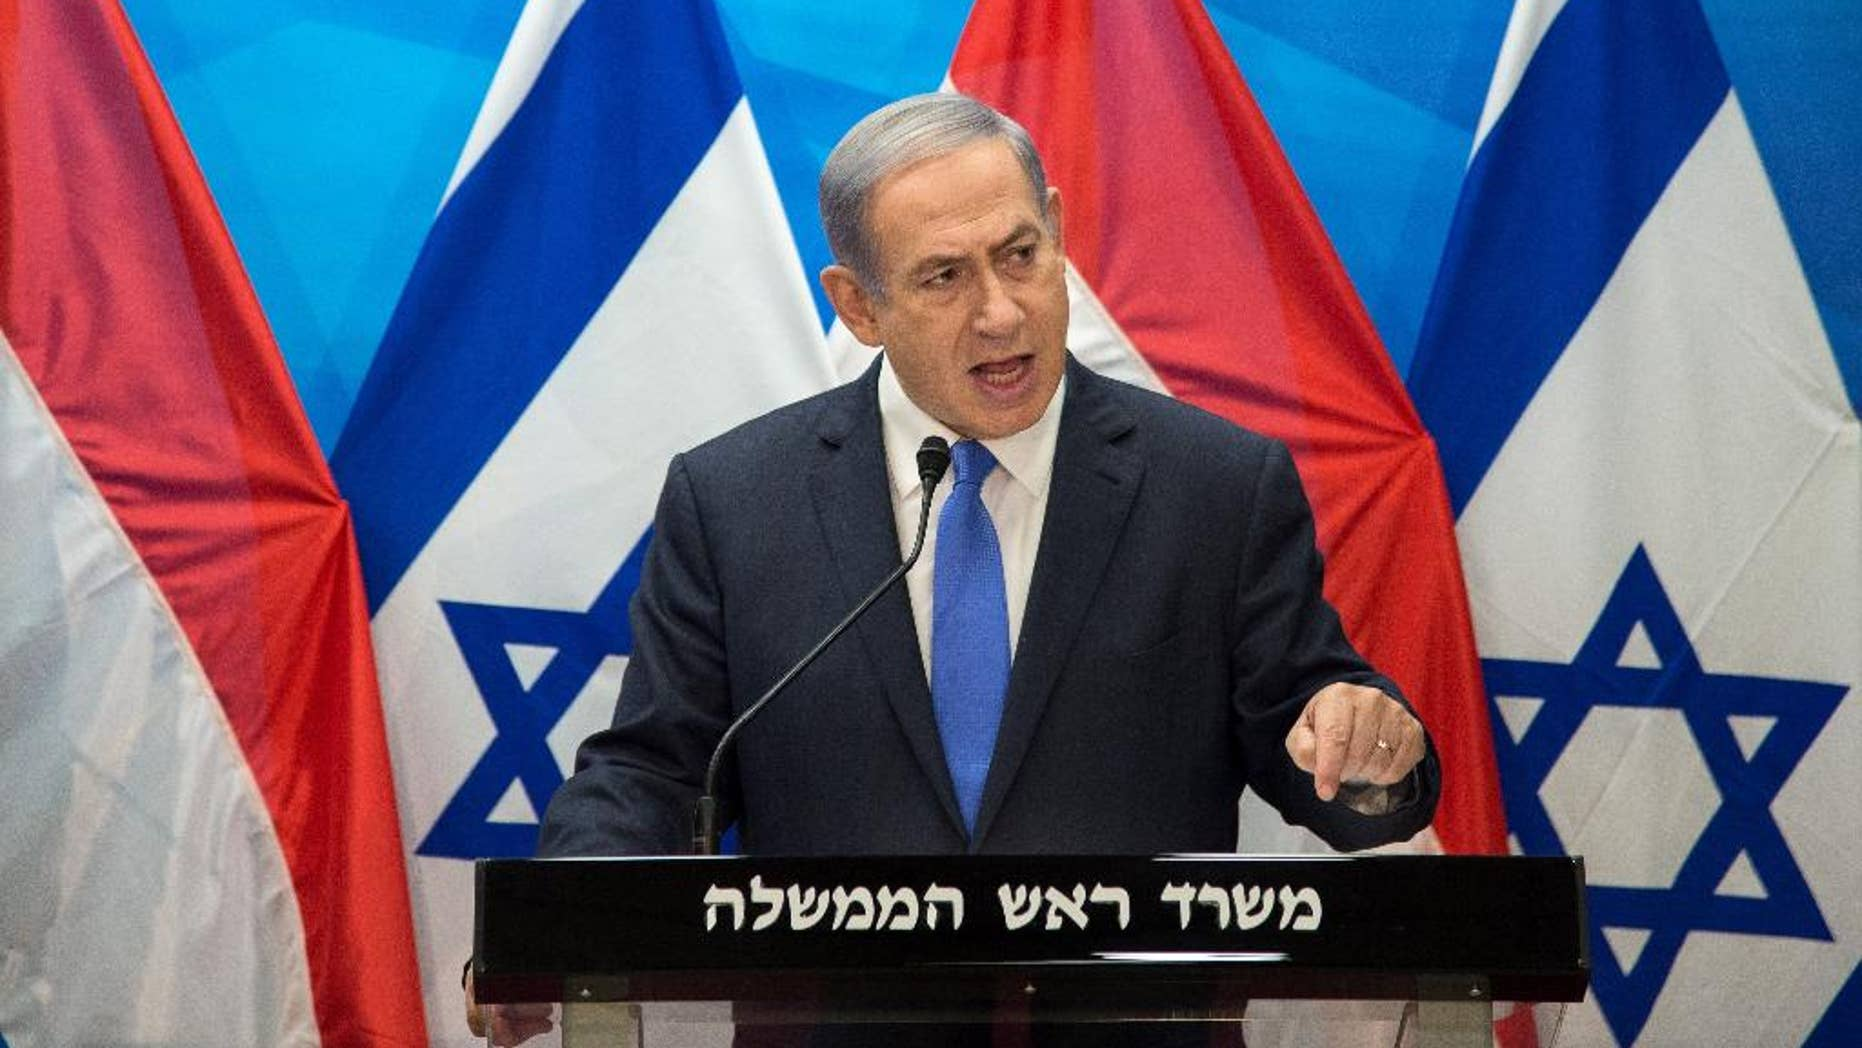 FILE - In this July 14, 2015 file photo, Israel's Prime Minister Benjamin Netanyahu speaks during a press conference with Dutch Foreign Minister Bert Koenders at the Prime Minister's office in Jerusalem. Some suburban Philadelphia high school alumni say they've sent a 1960s yearbook to one of their most famous classmates, Netanyahu. The Philadelphia Daily News reports classmates from Cheltenham High School's Class of 1973 sent Netanyahu his 1967 yearbook.  (Ahikam Seri/Pool Photo via AP, File)